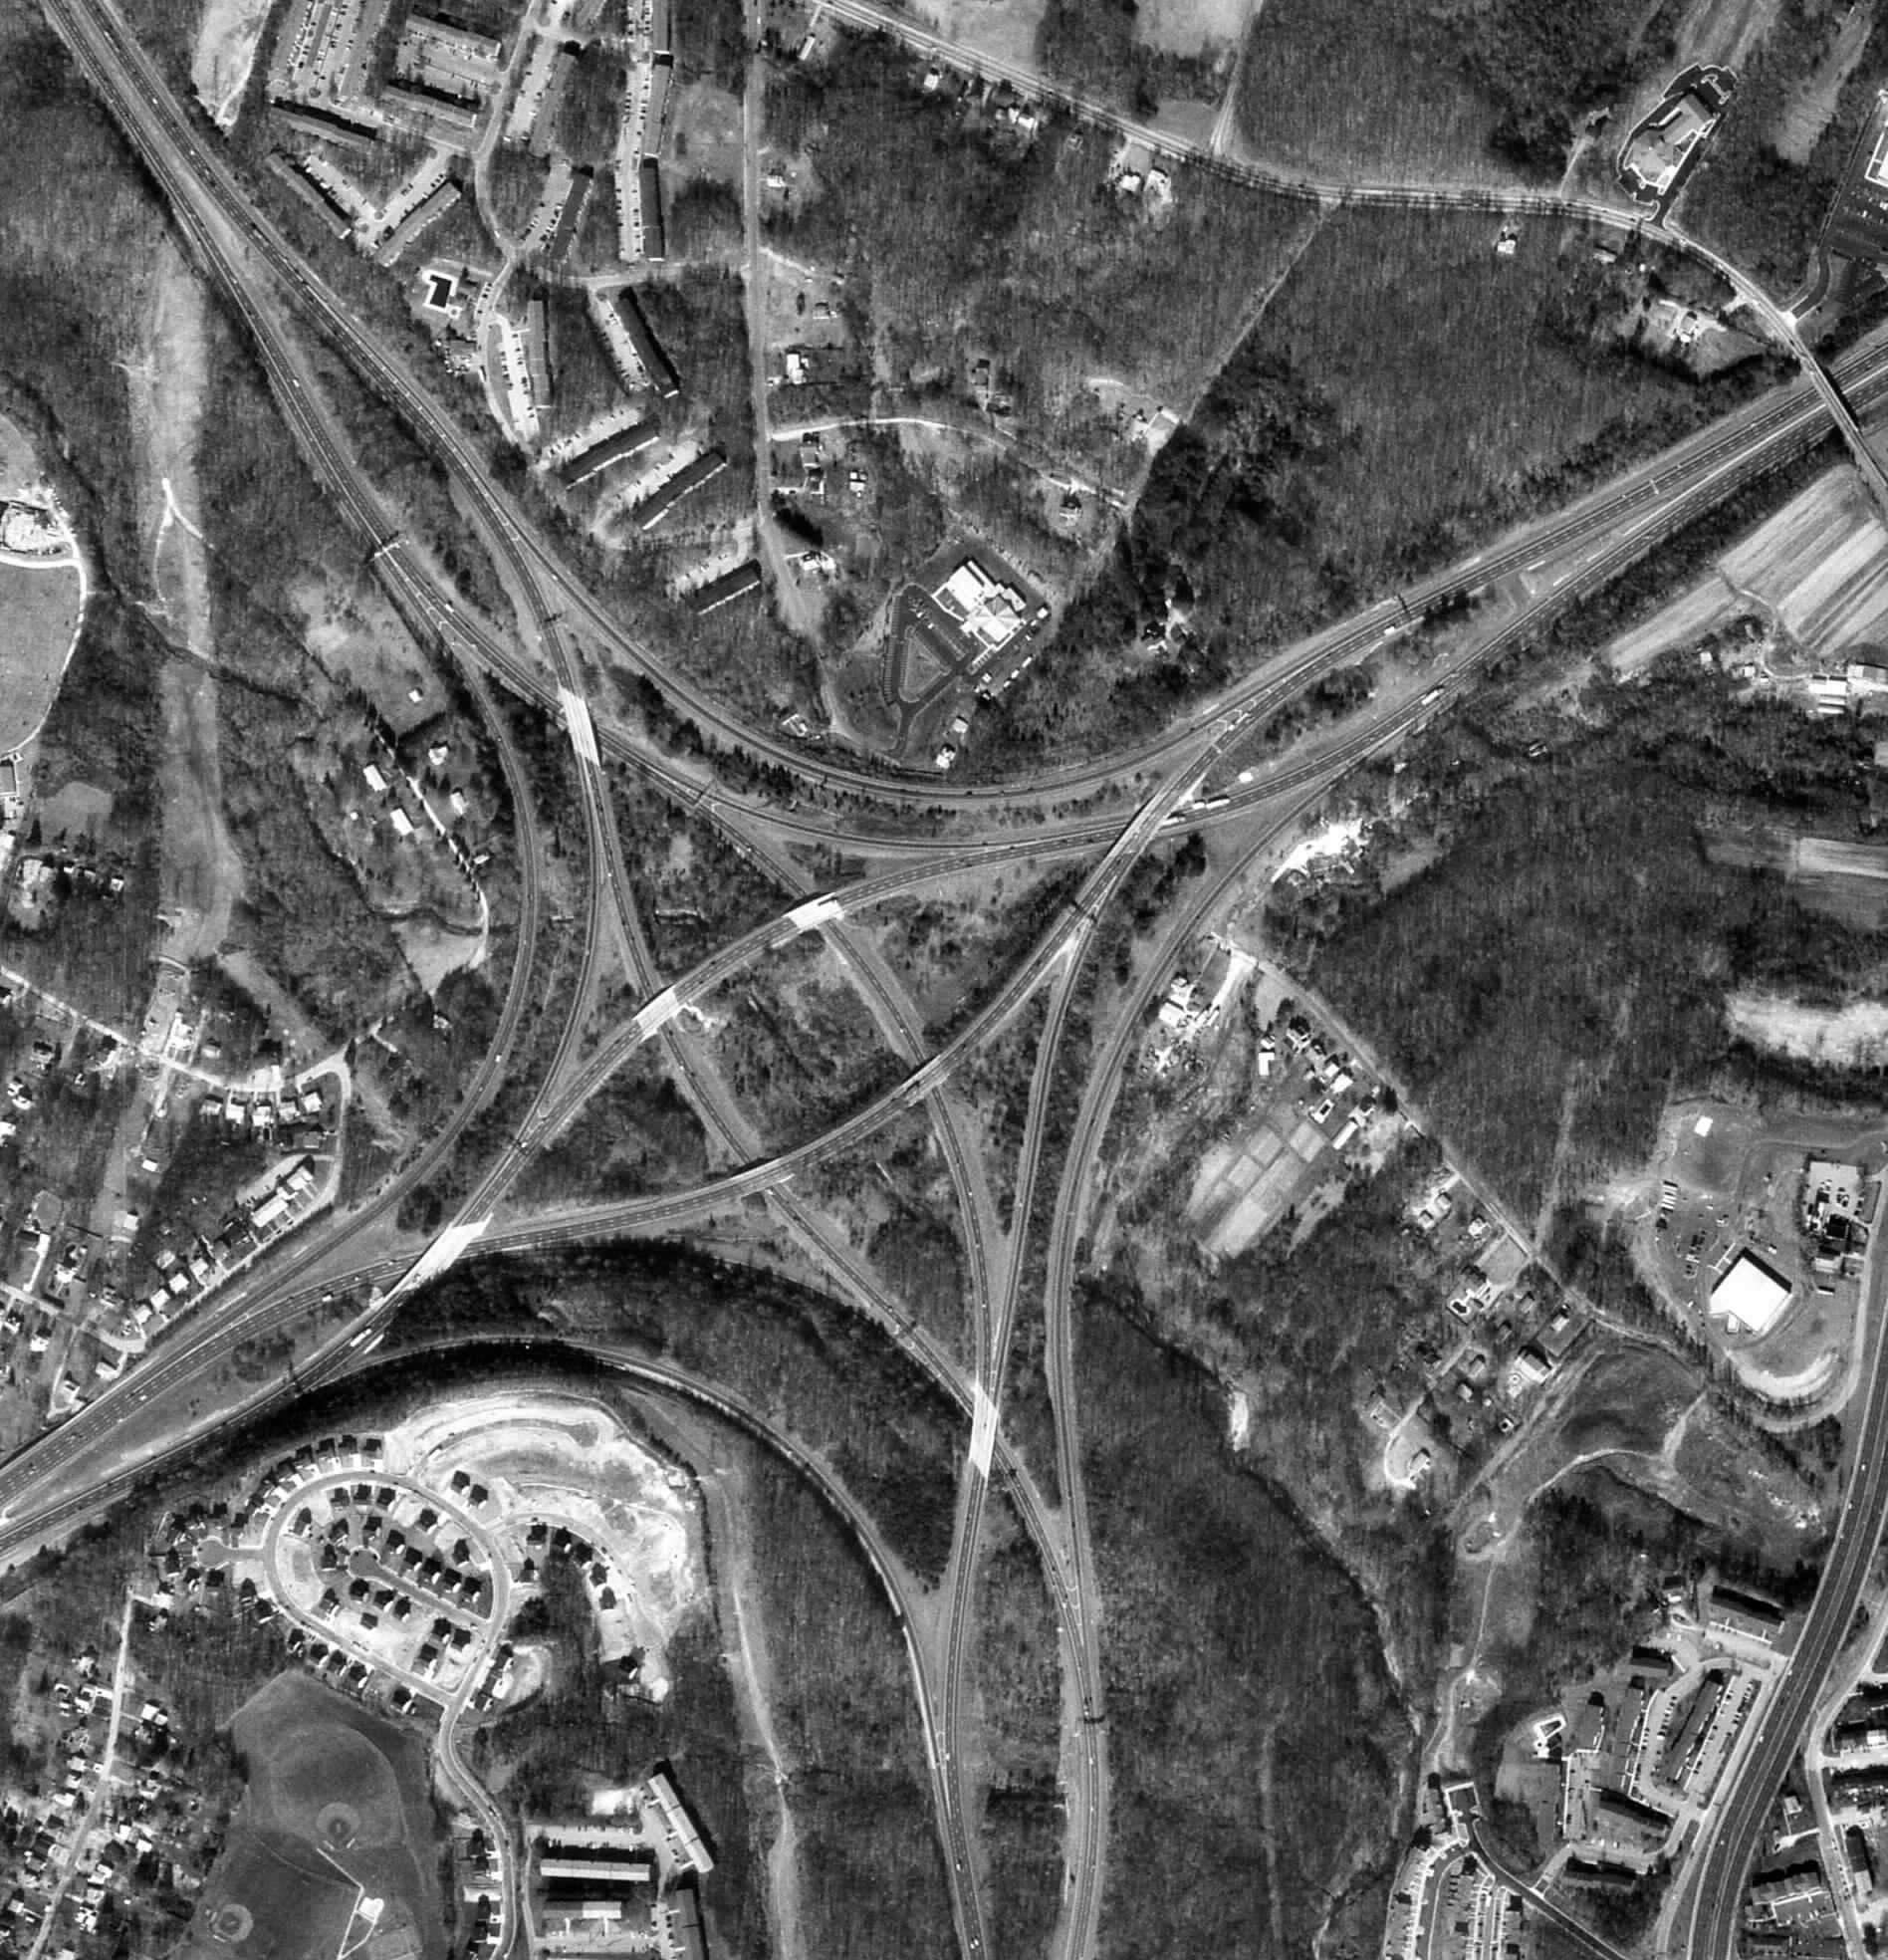 Map analysis black and white aerial photo of an interchange